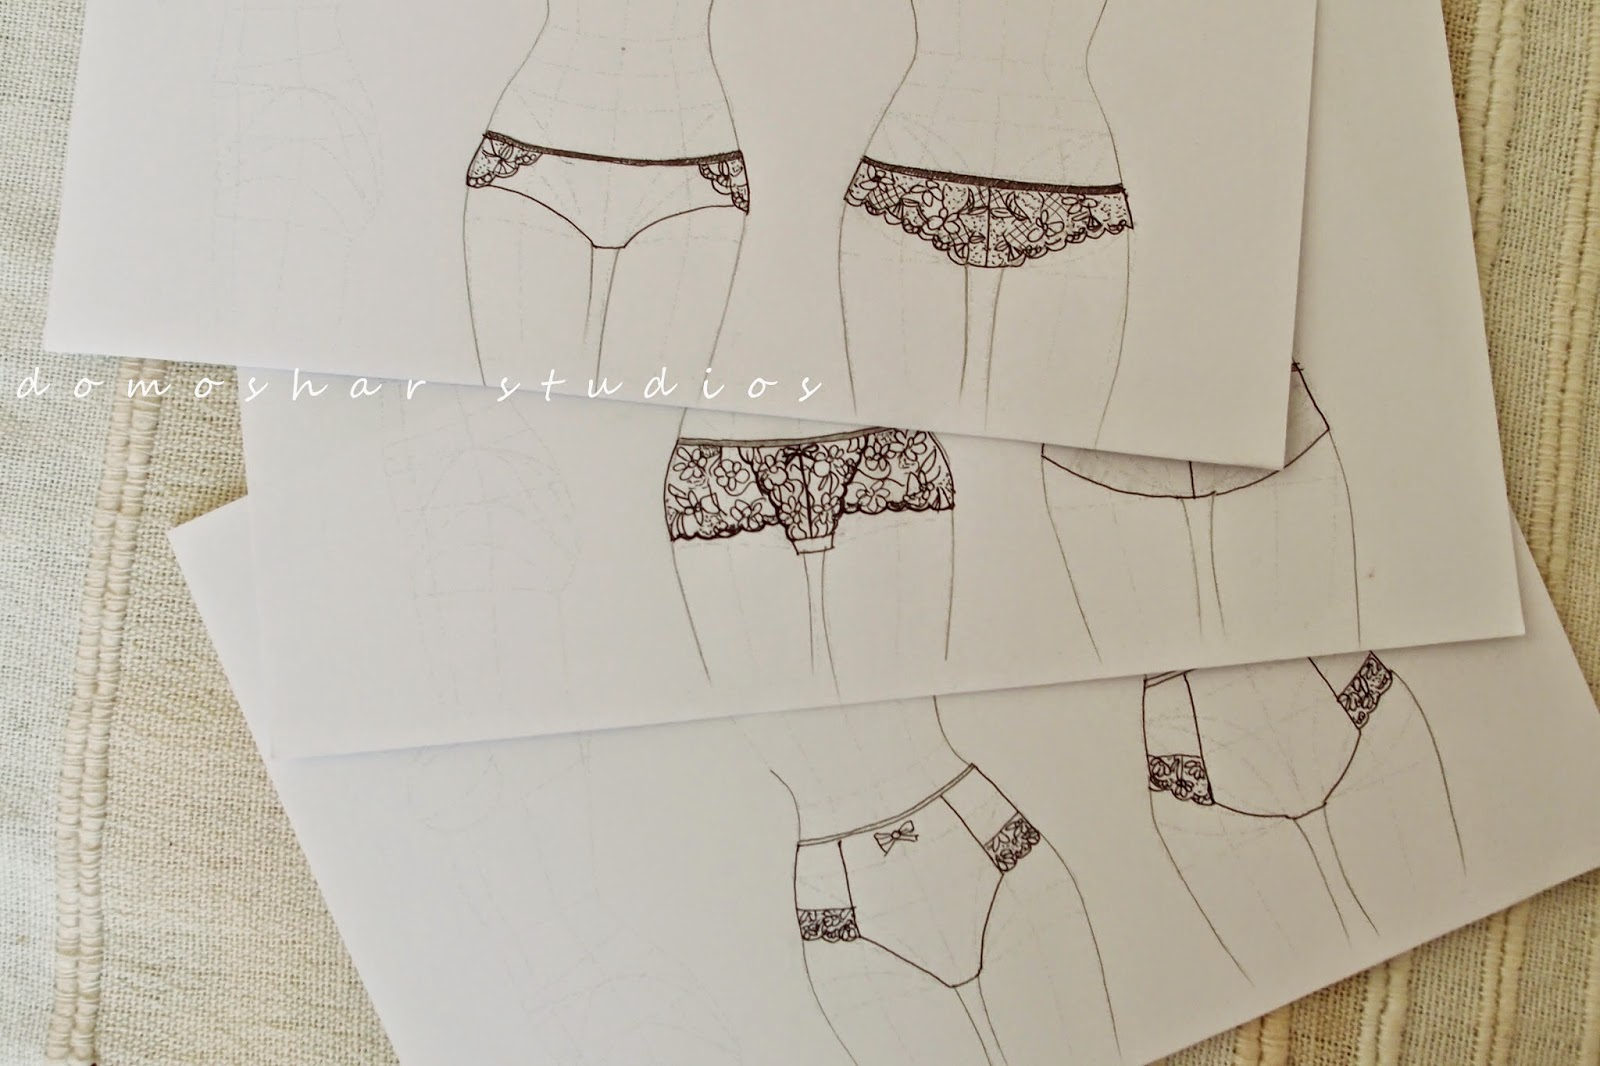 Lacy knickers plans on paper